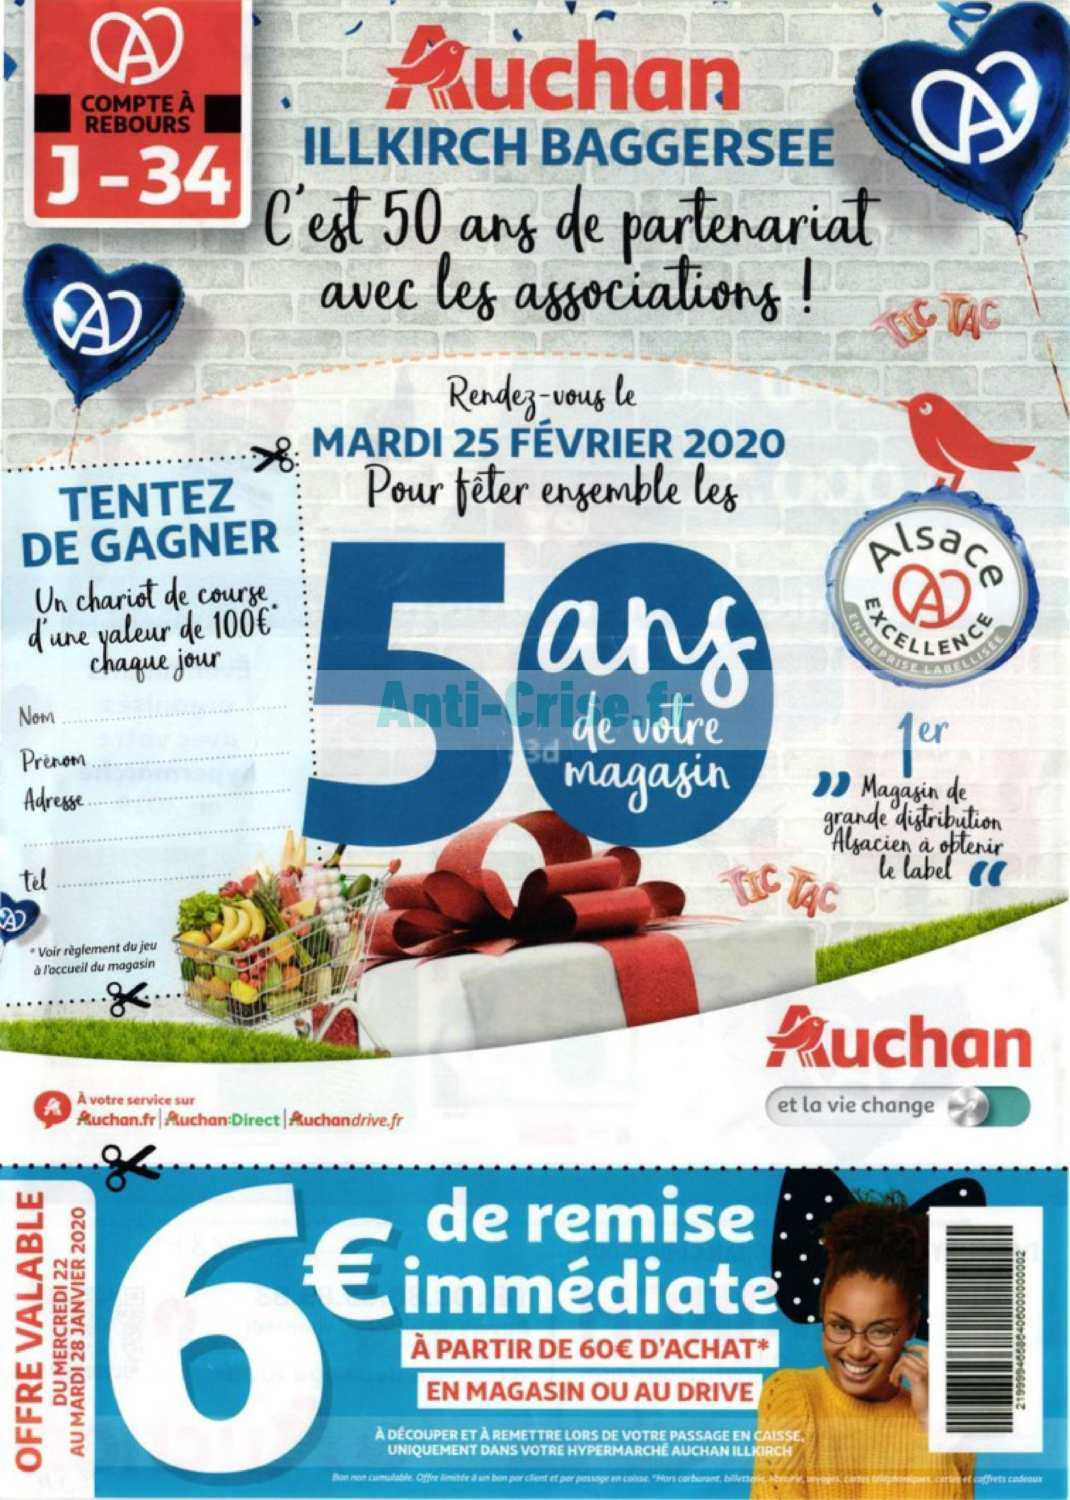 https://media.anti-crise.fr/2020/02/fevrier2020auchan-local2502202025022020S0C0illkirch-1-214x300.jpg